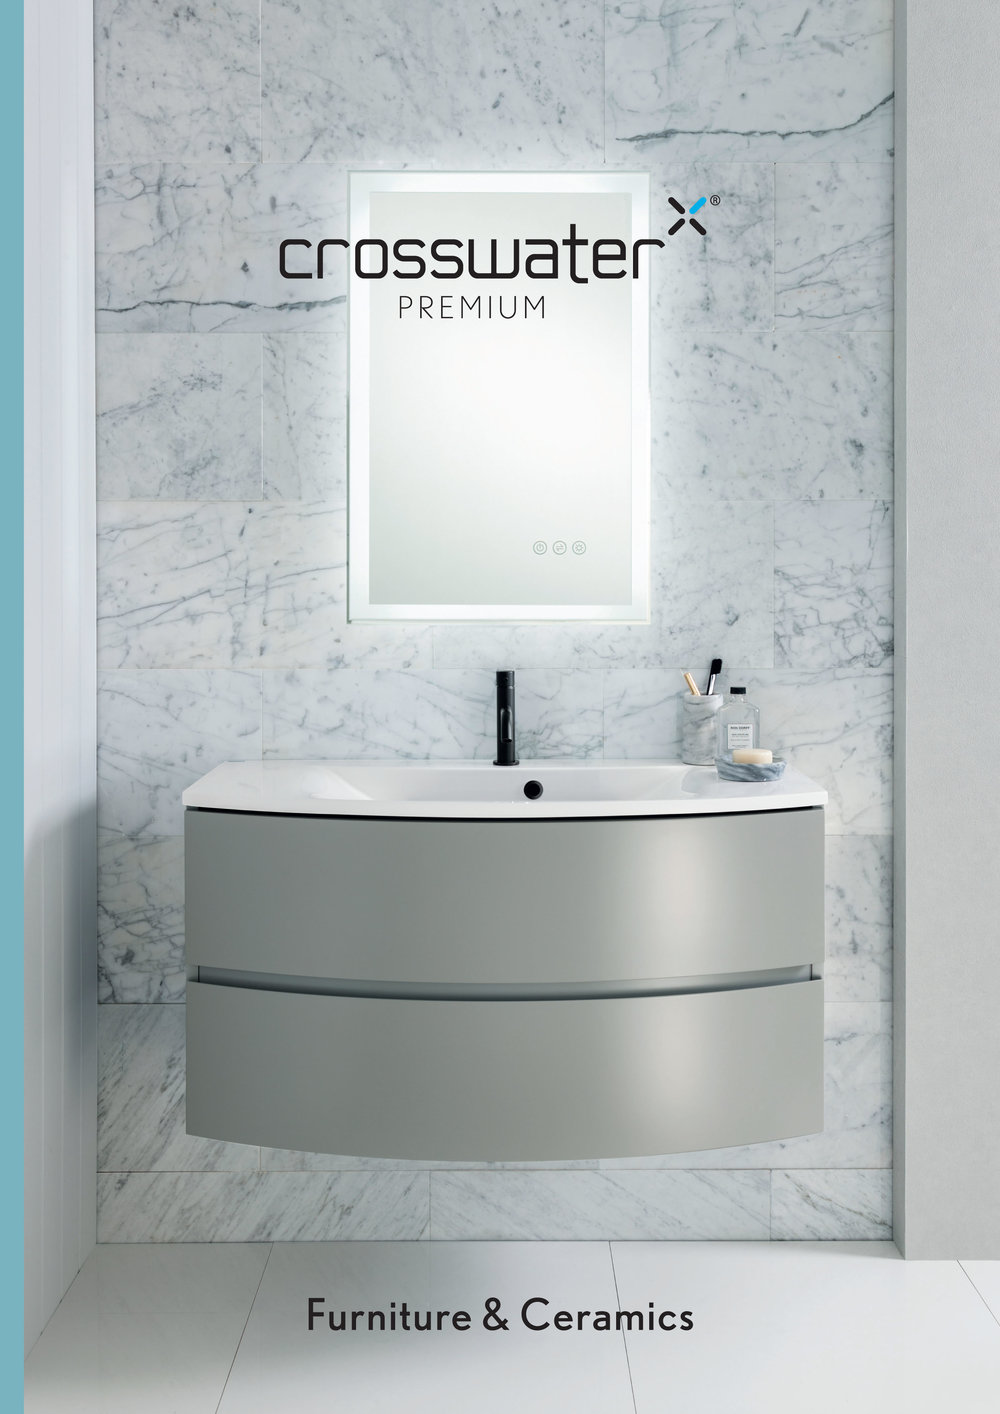 Crosswater Brochure Cover Waterloo Bathrooms Dublin.jpg